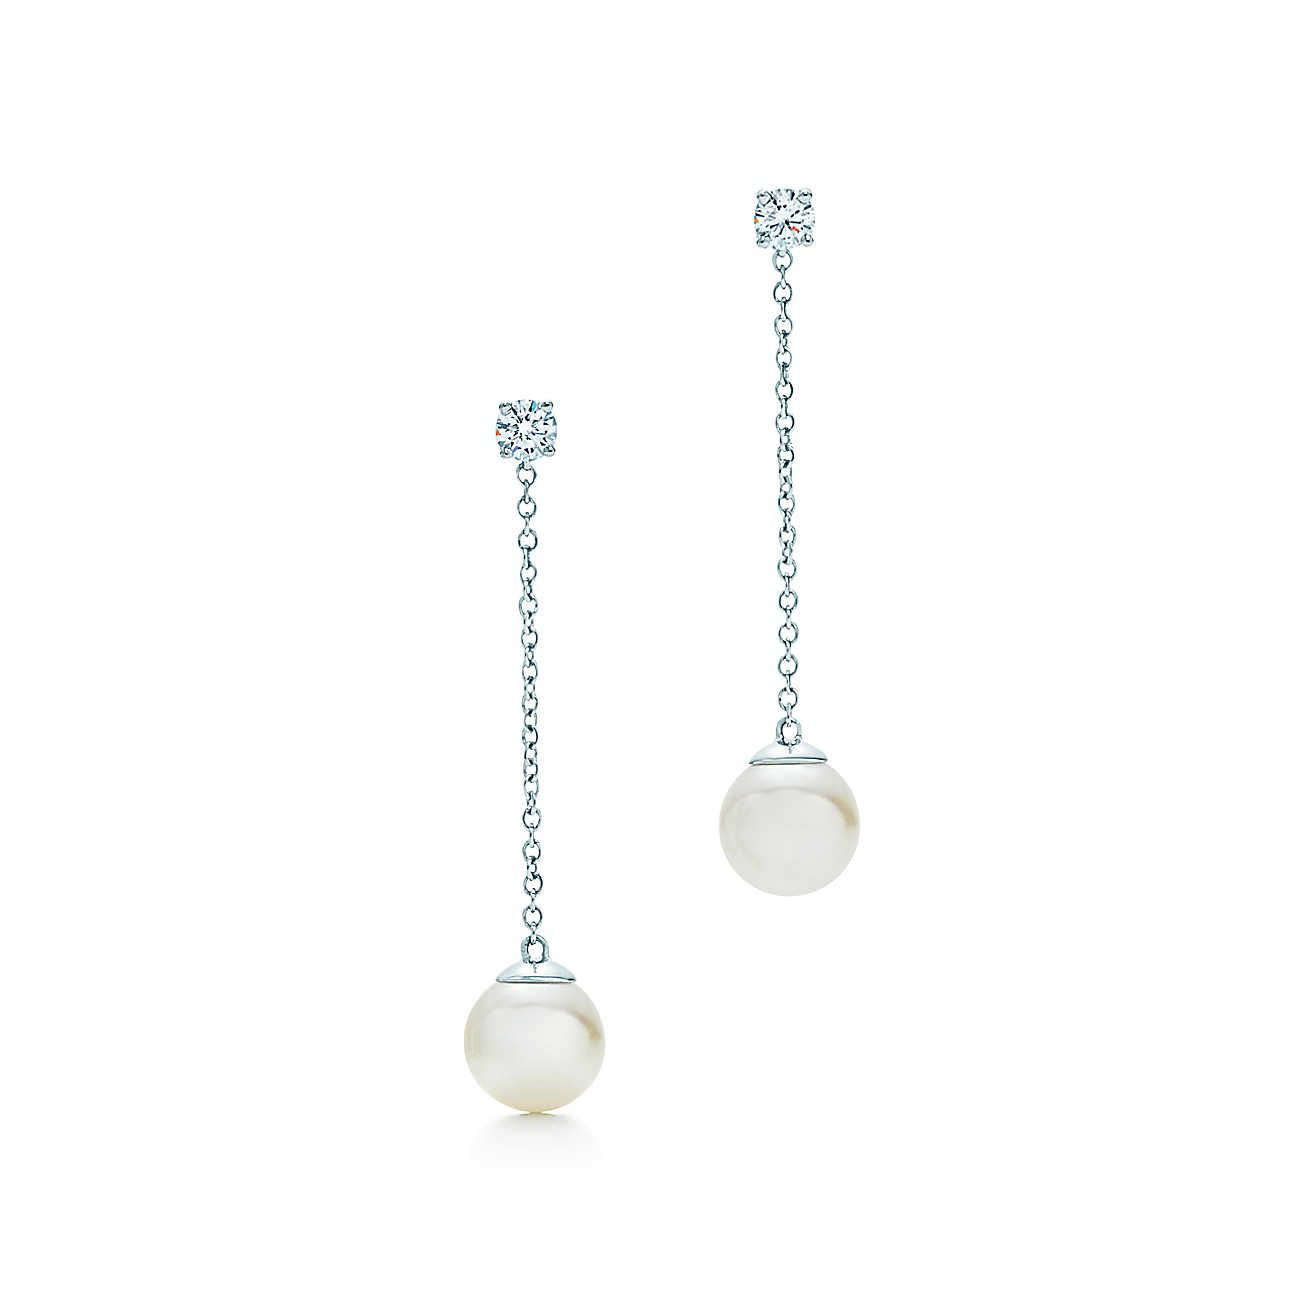 Tiffany Signature™ Pearl Drop Earrings